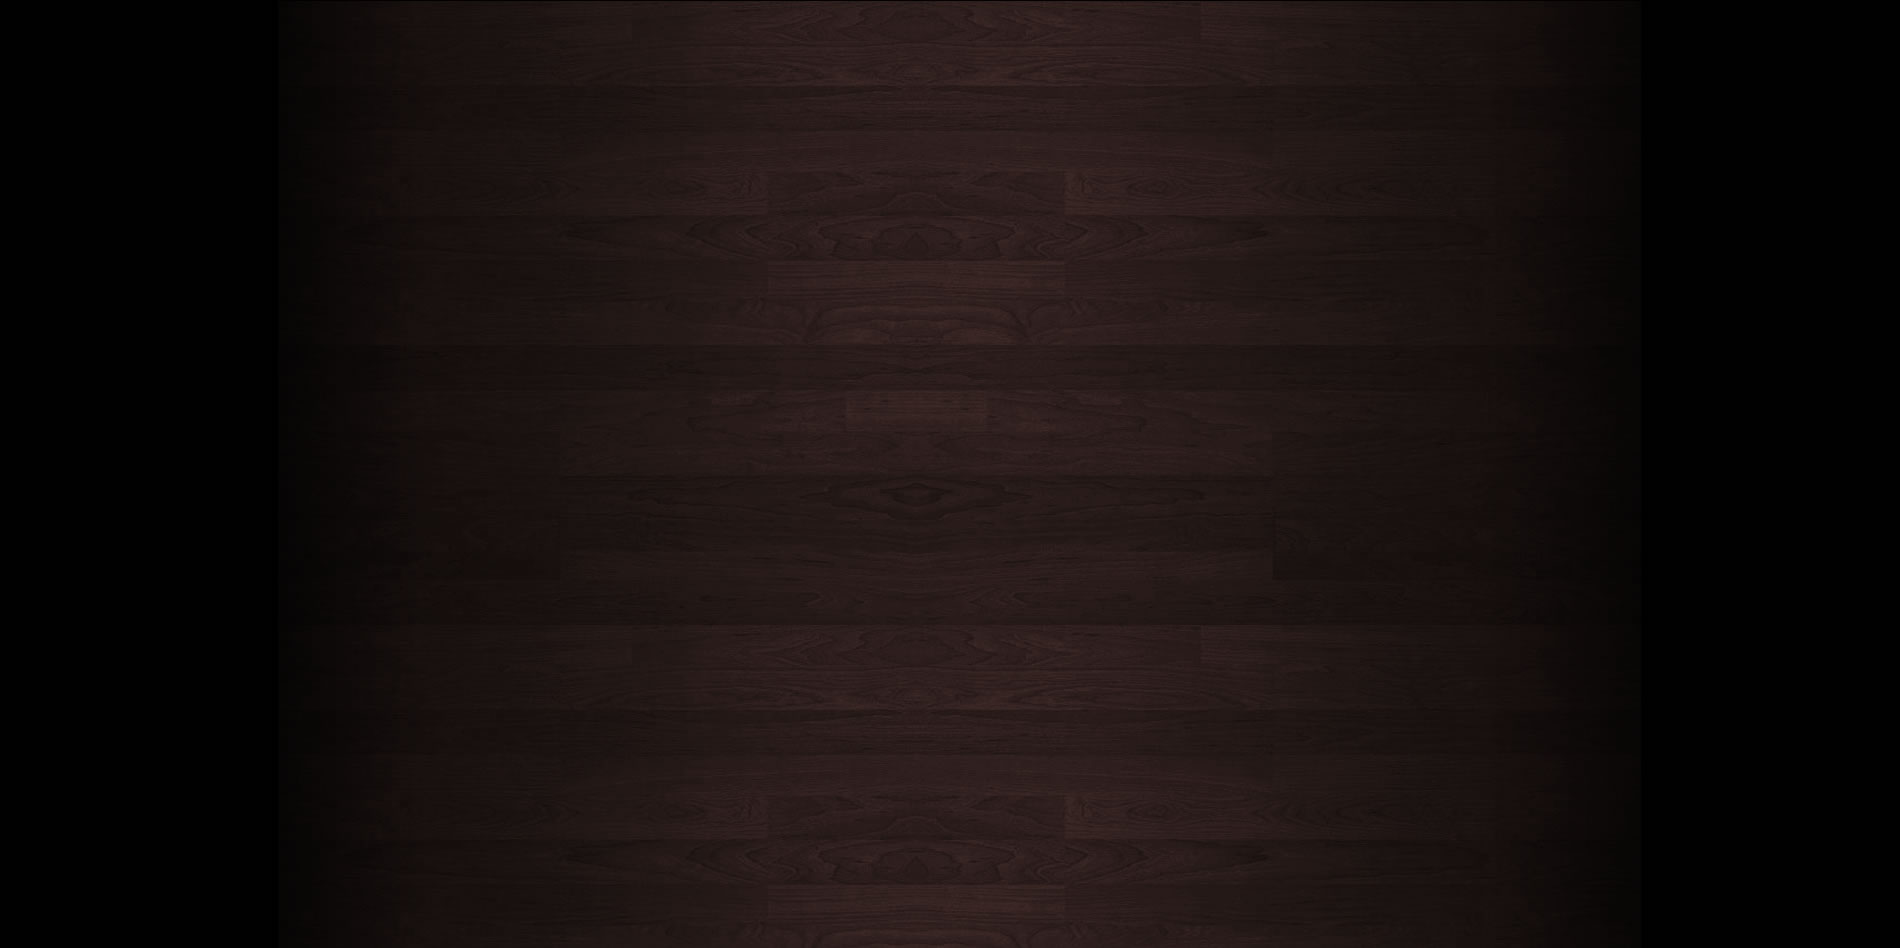 [44+] Dark Rustic Wallpaper on WallpaperSafari